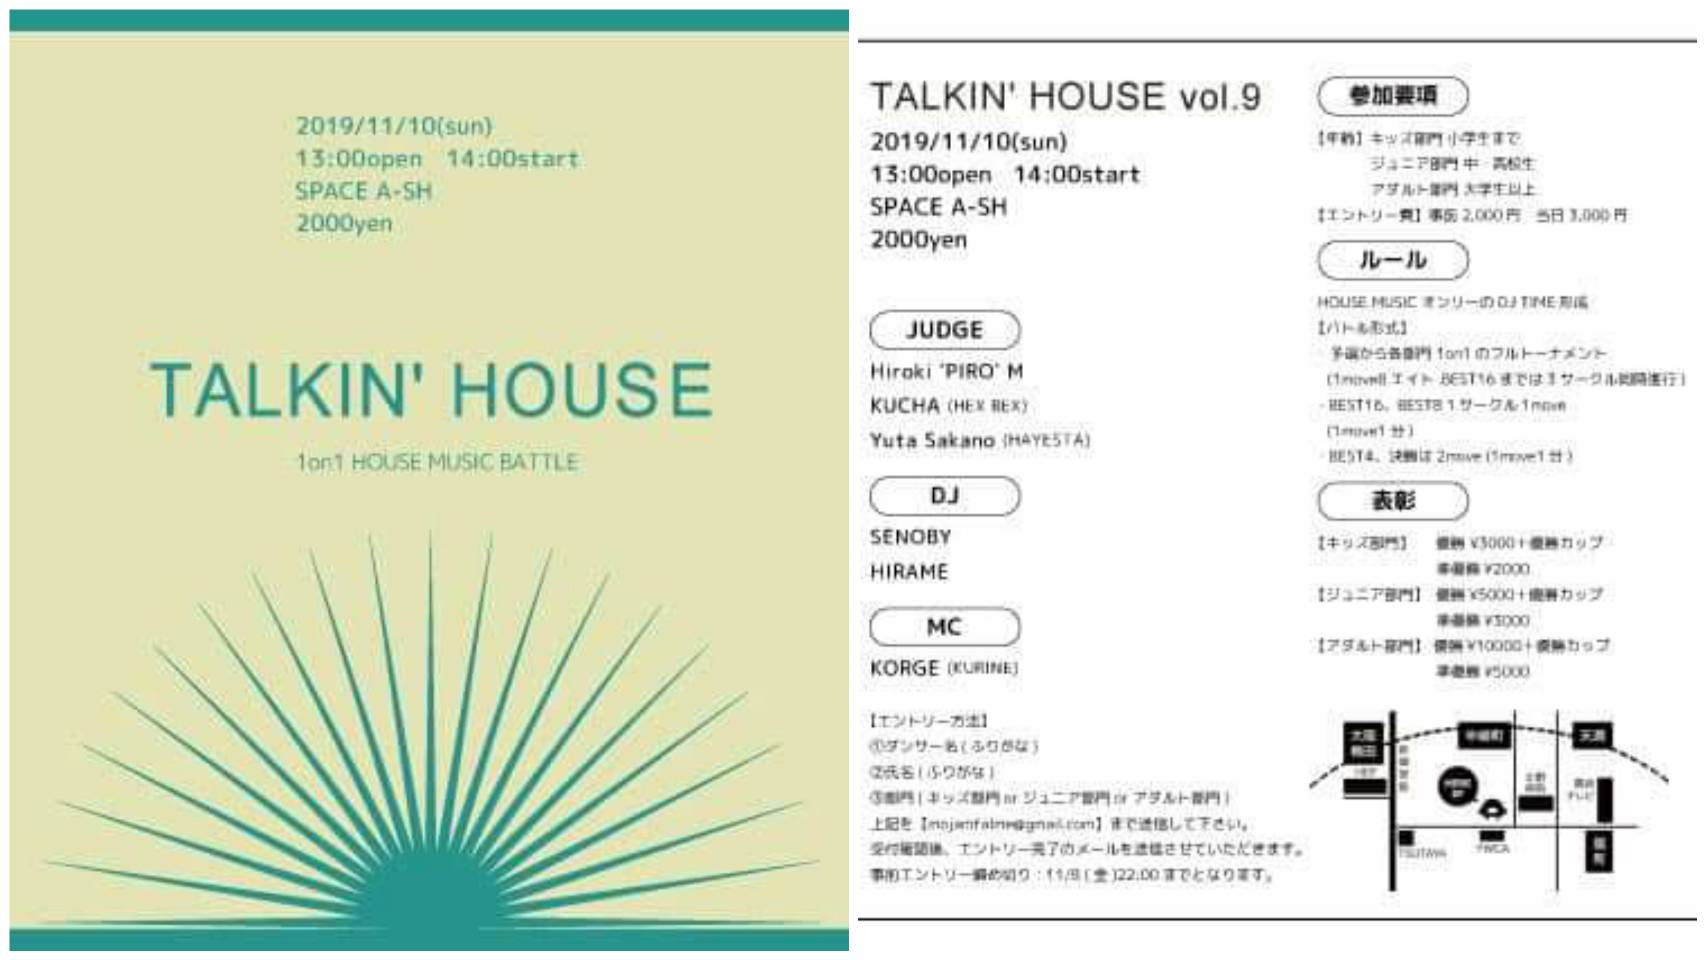 TALKIN'HOUSE vol.9